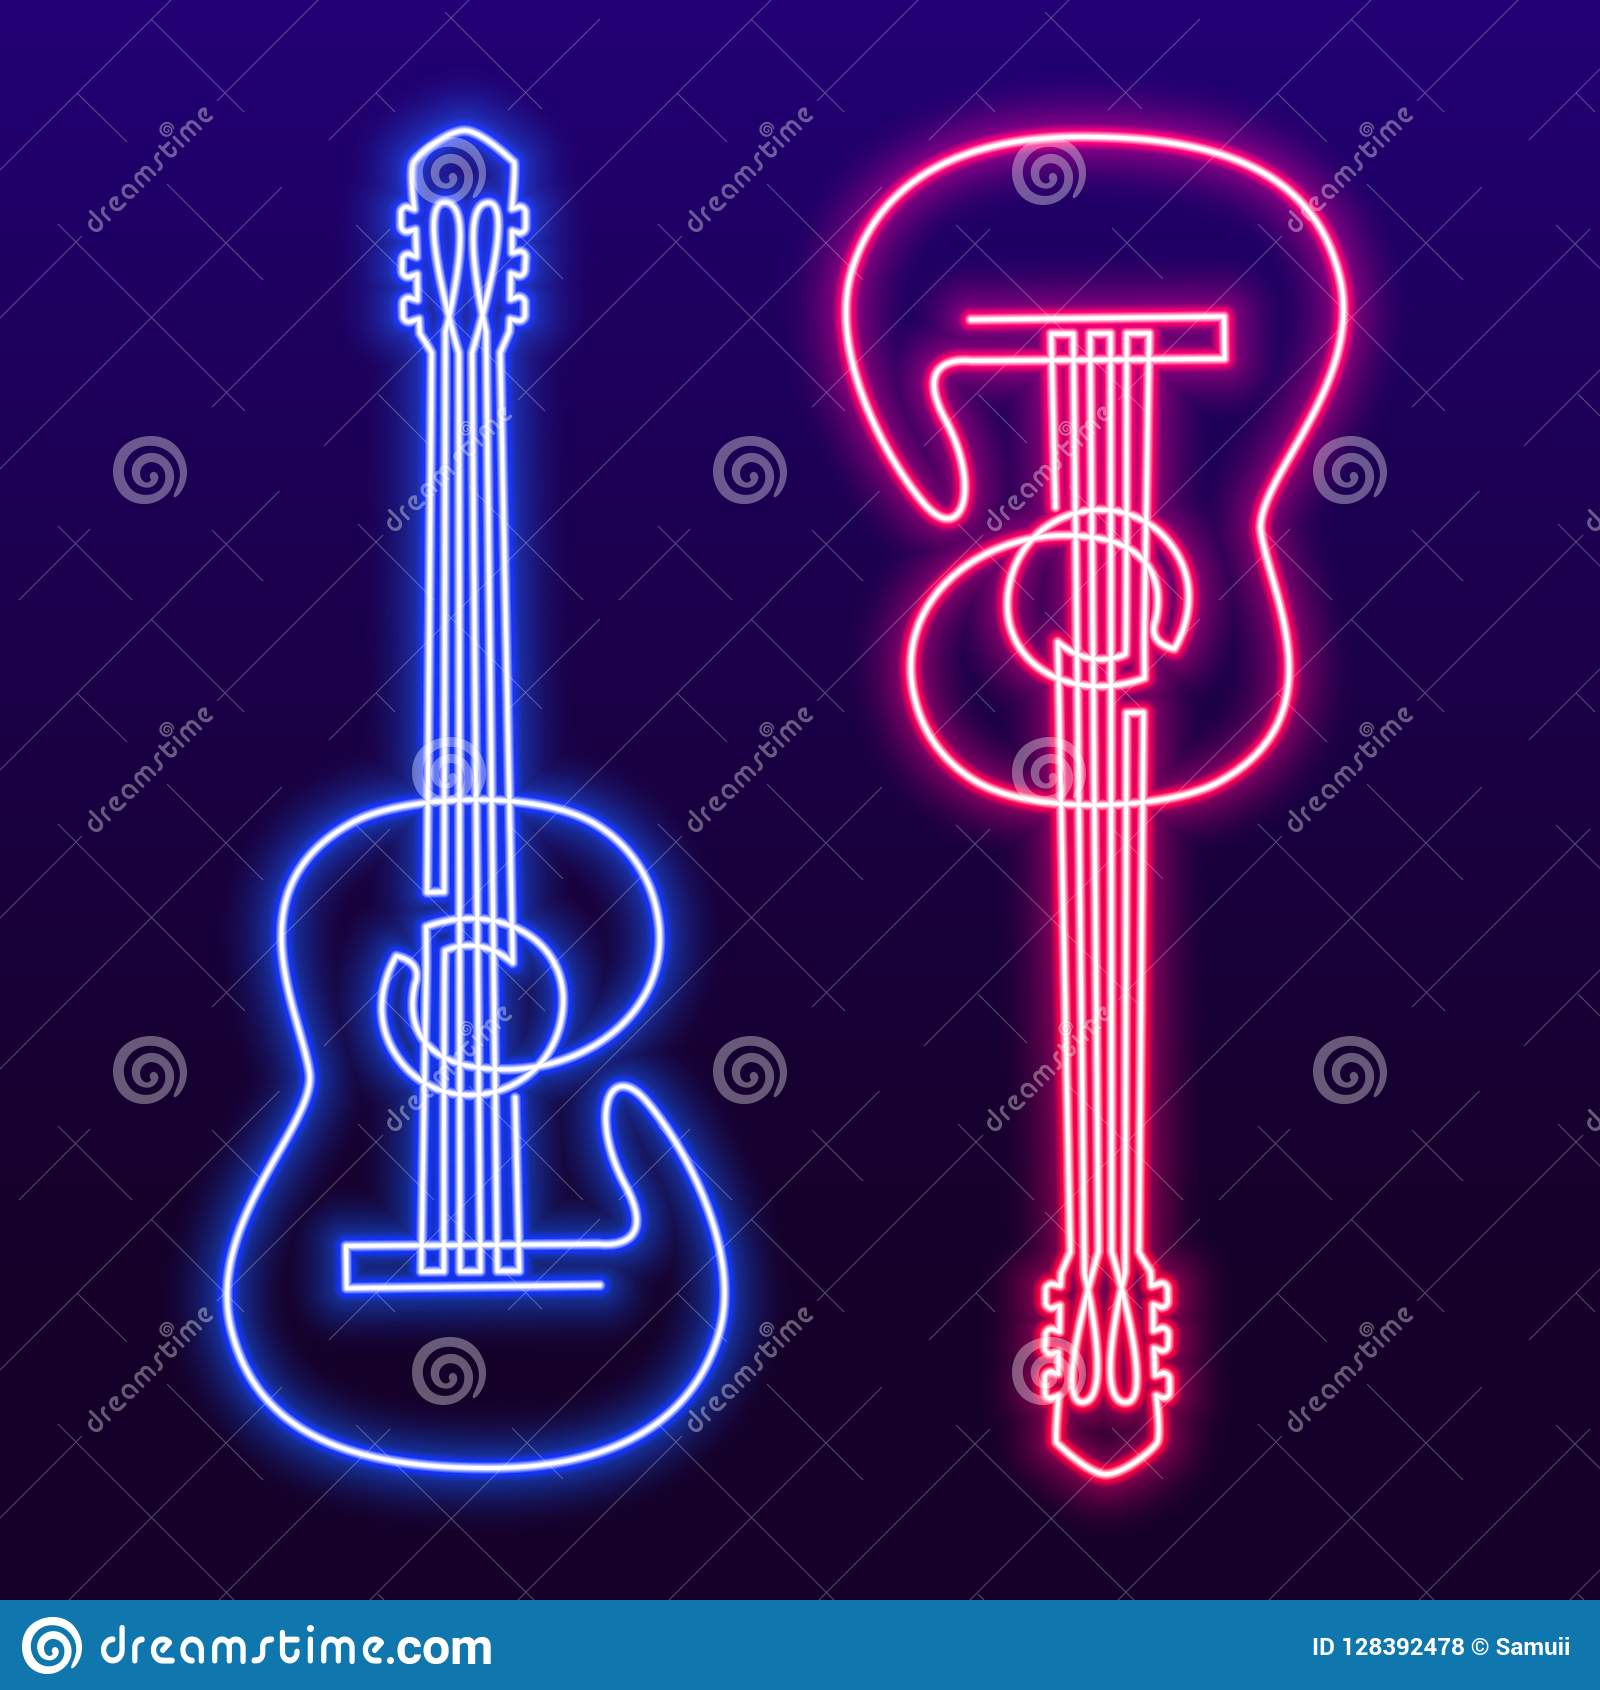 Neon Pink Blue Light Lamp Continuous Line Drawing Of Acoustic Guitar